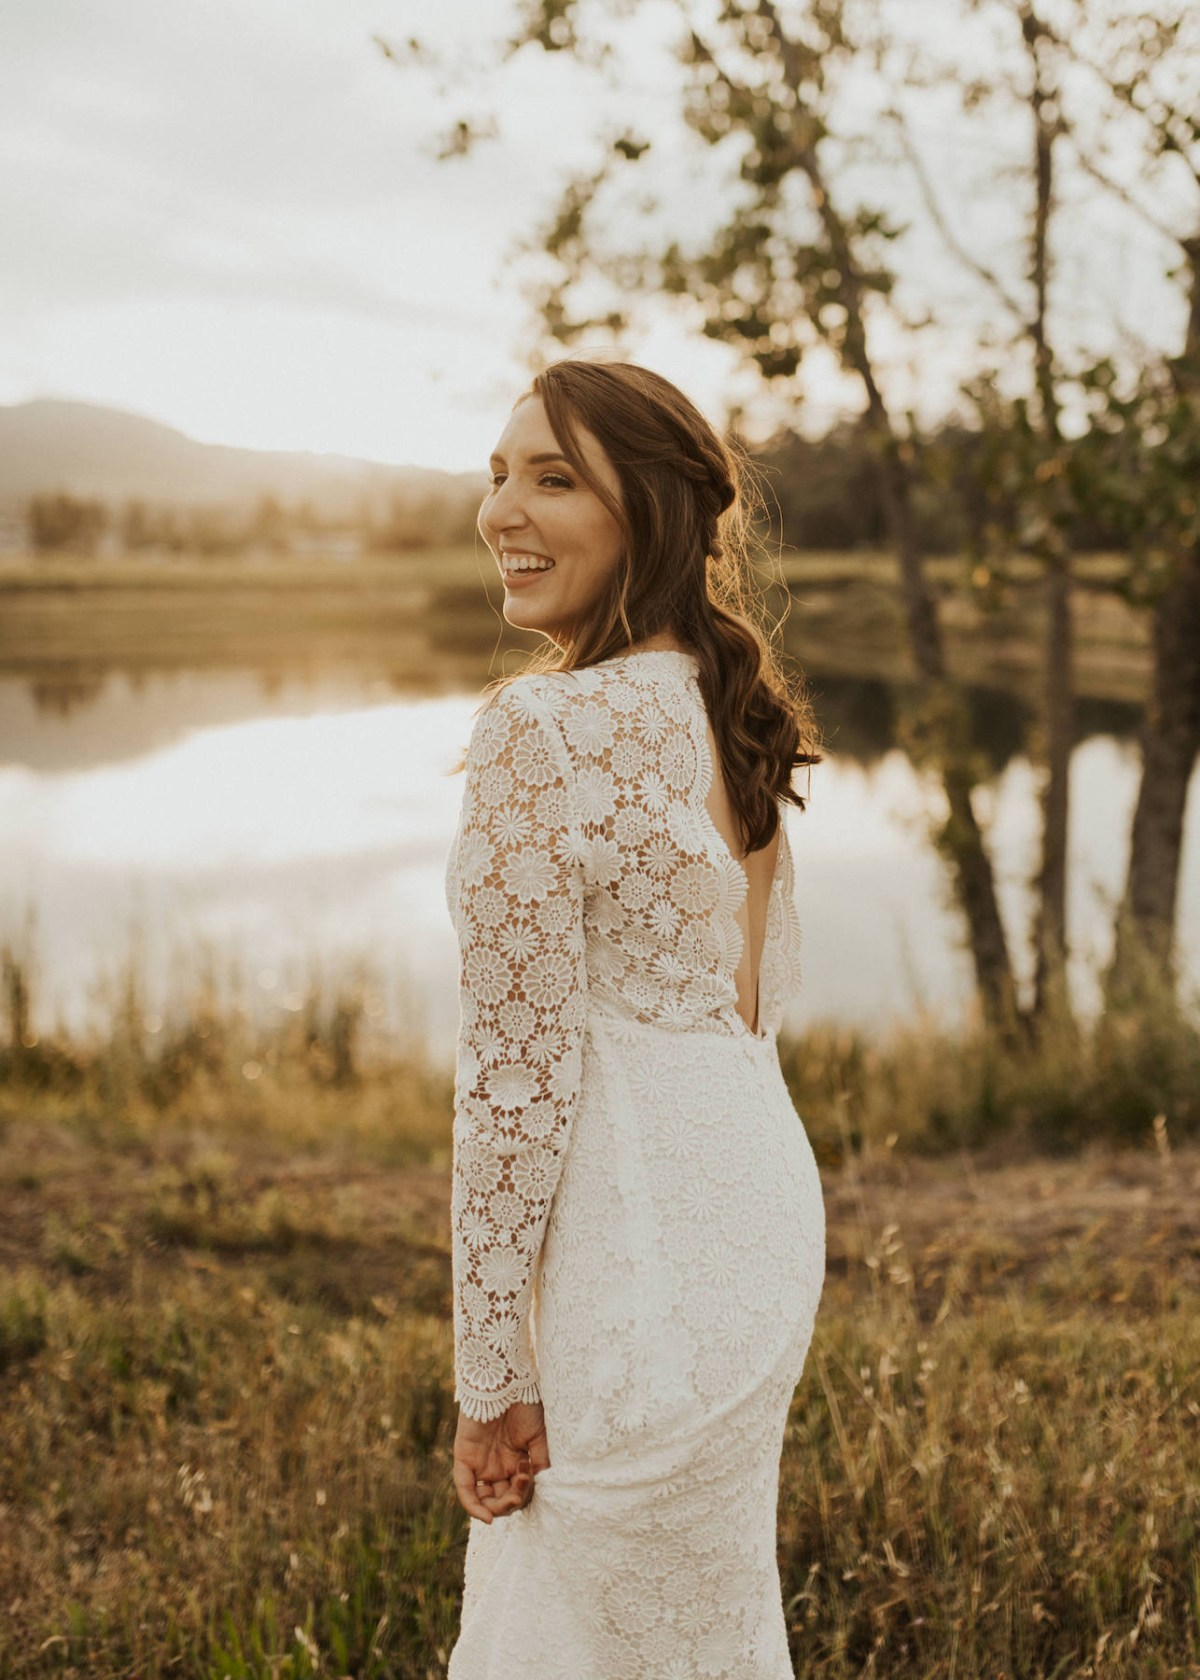 A review of my affordable wedding dress, the Agnes dress by Sezane | W&S